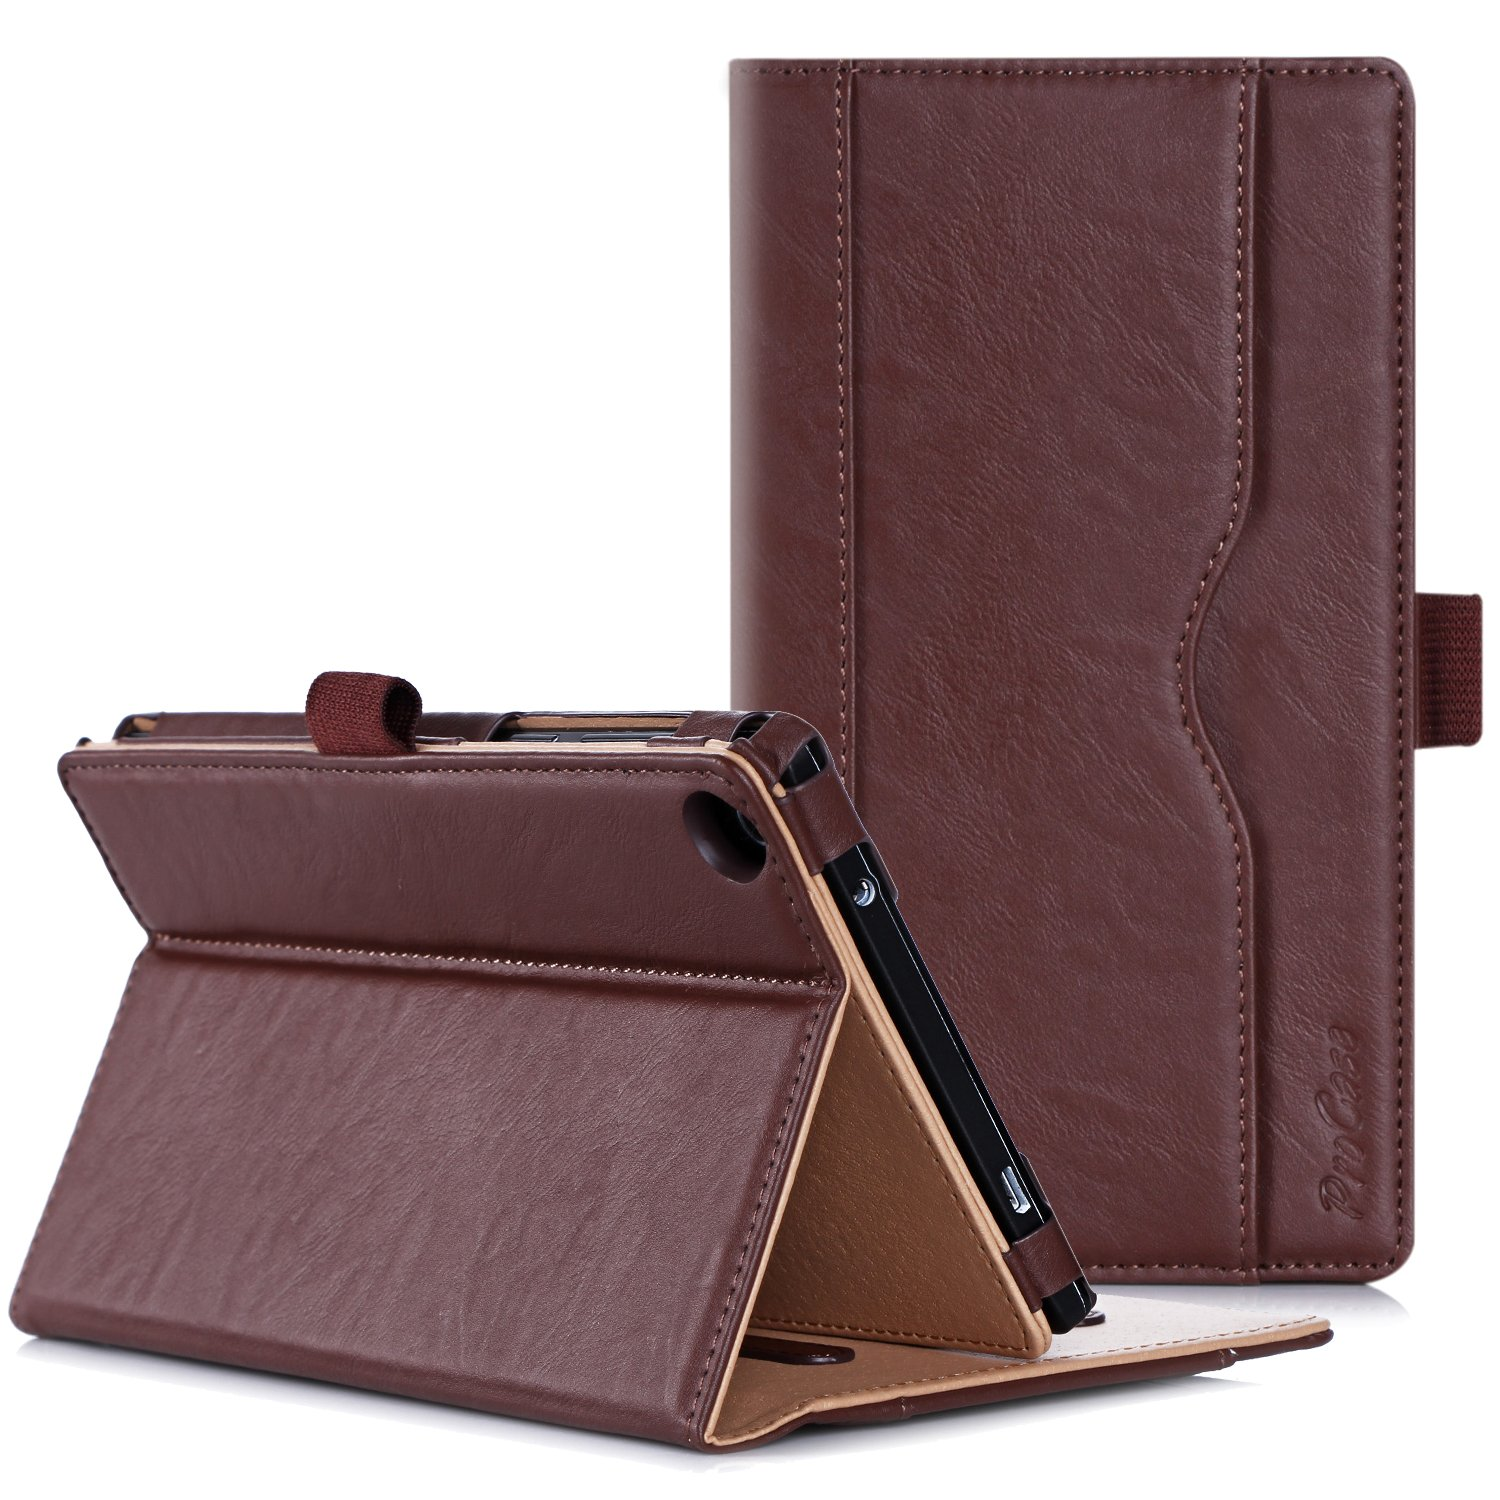 ProCase Lenovo Tab 2 A7-30 Case - Leather Stand Folio Case Cover Lenovo Tab 2 A7-30 (A3300) 7-inch Android Tablet Multiple Viewing Angles, Document Card Pocket (Brown)